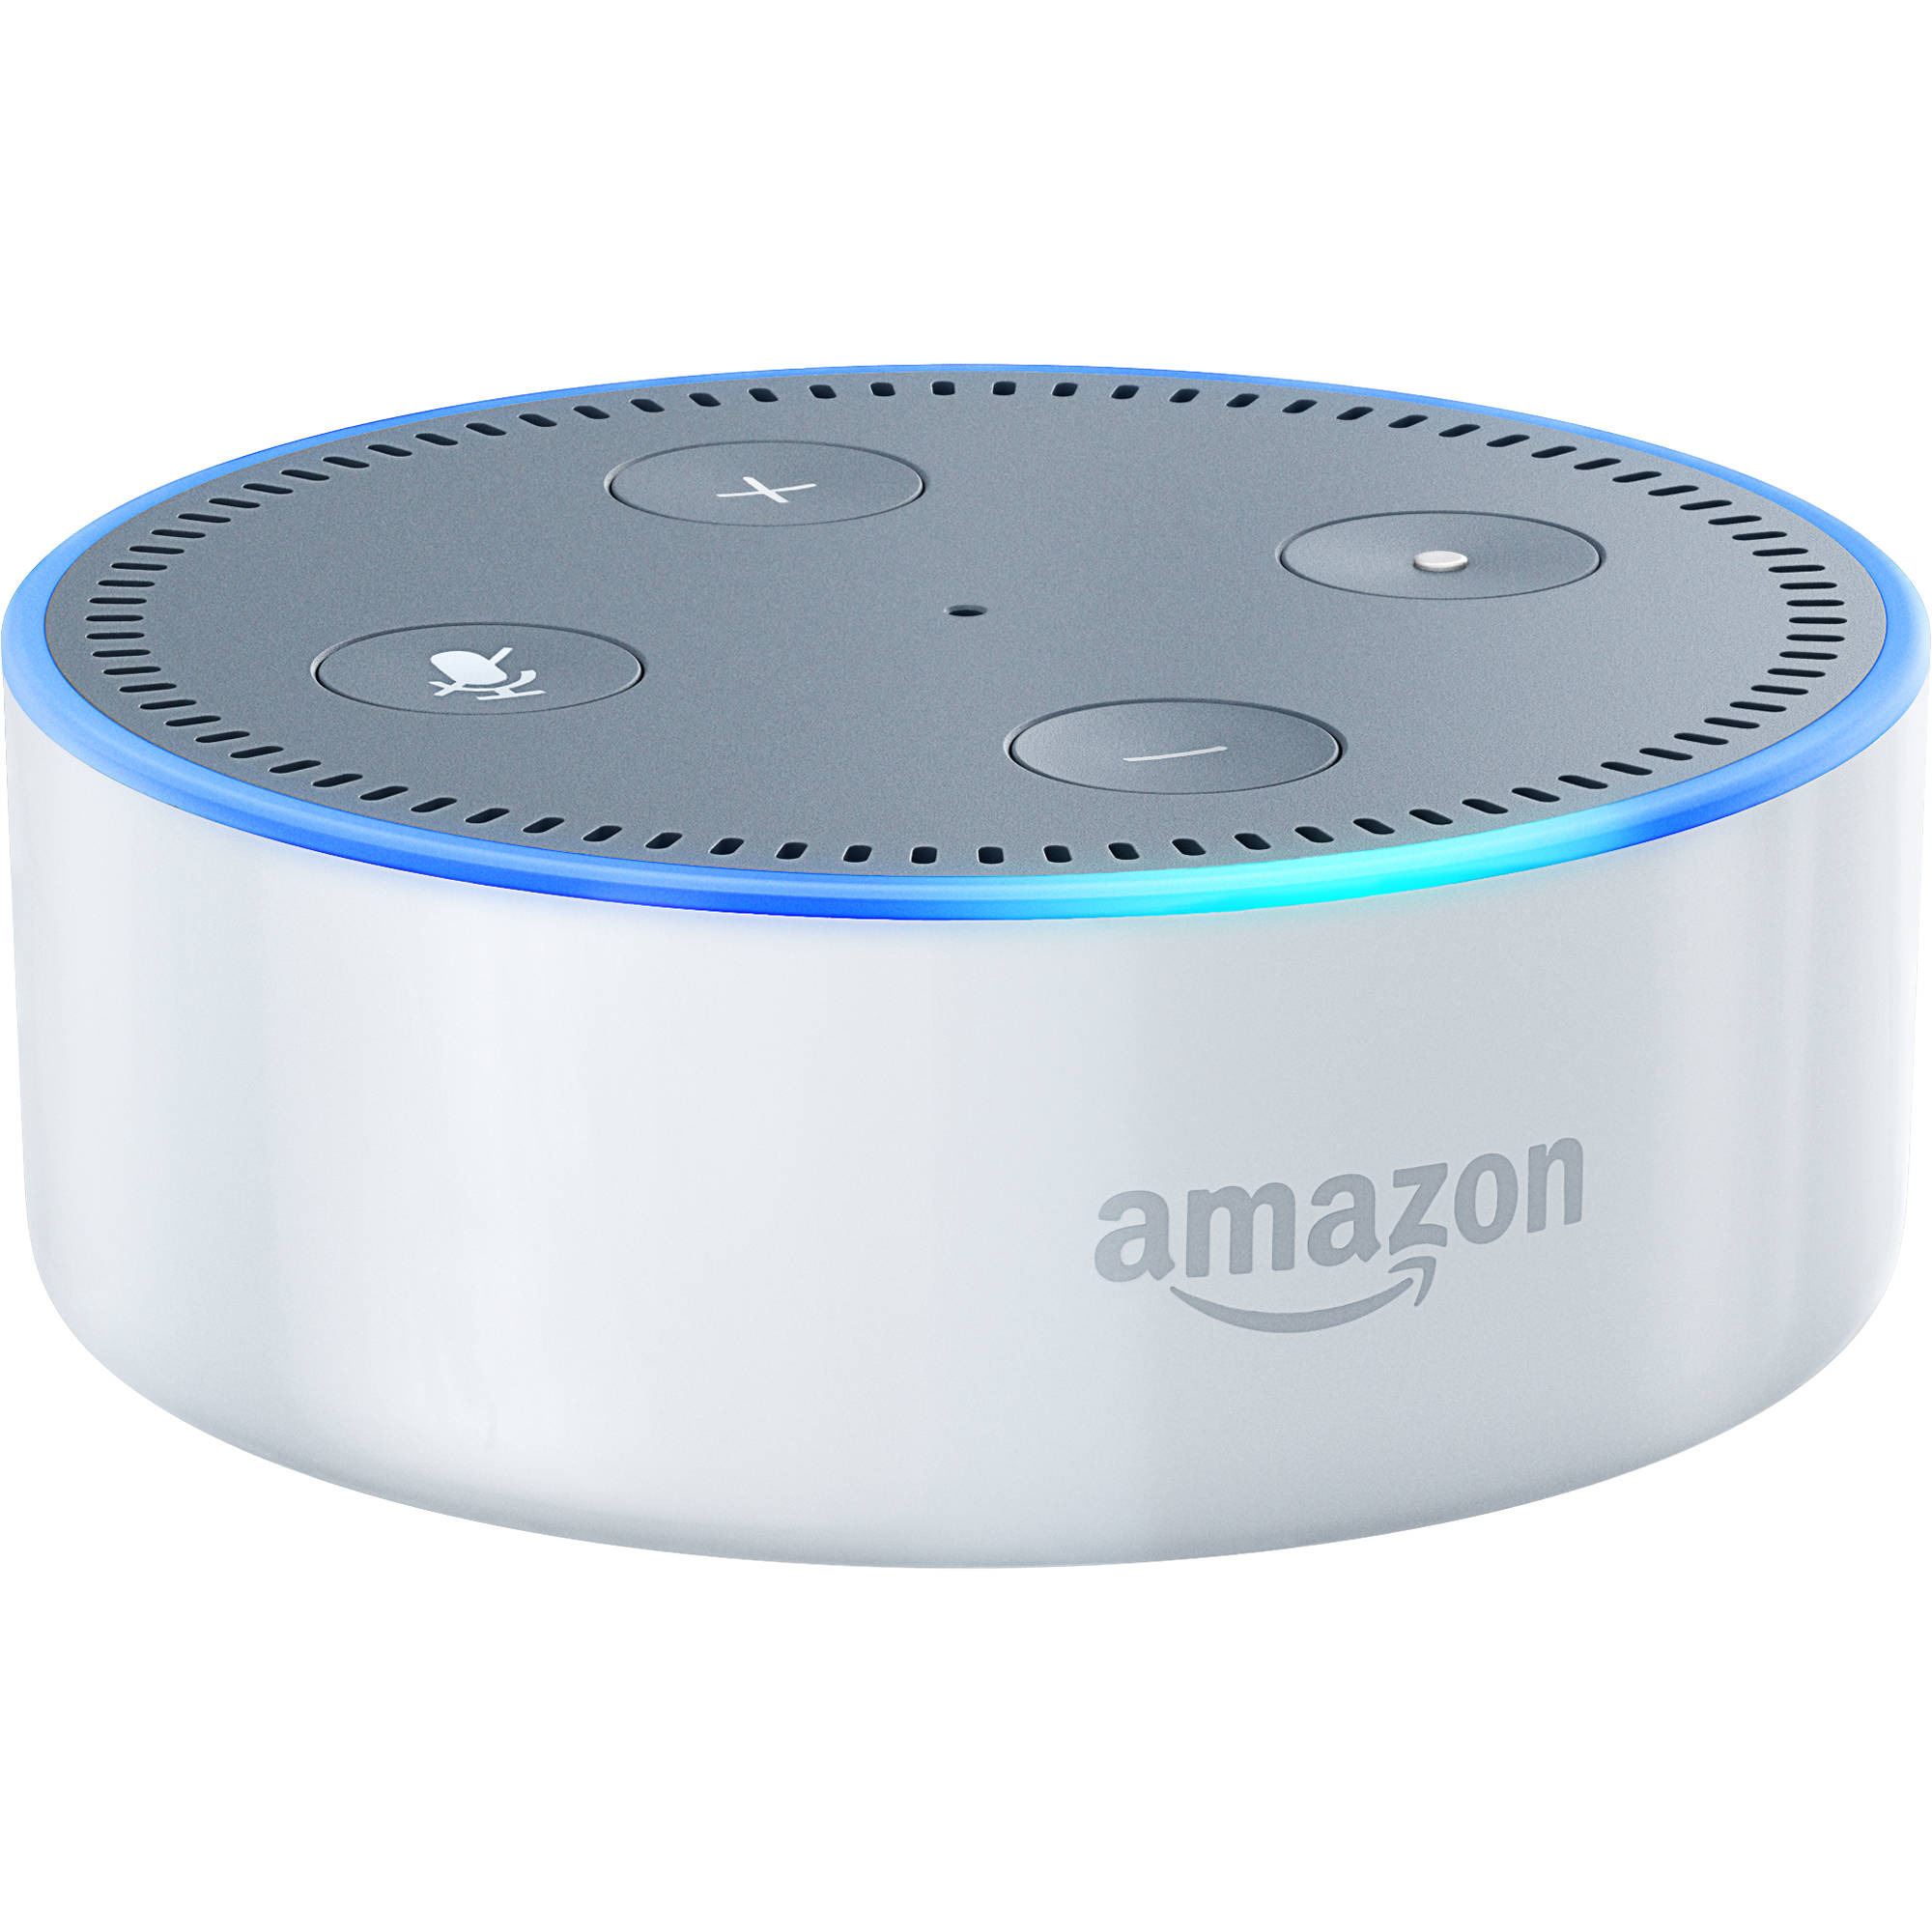 Amazon Echo Dot (2nd Generation, White) B015TJD0Y4 B&H Photo